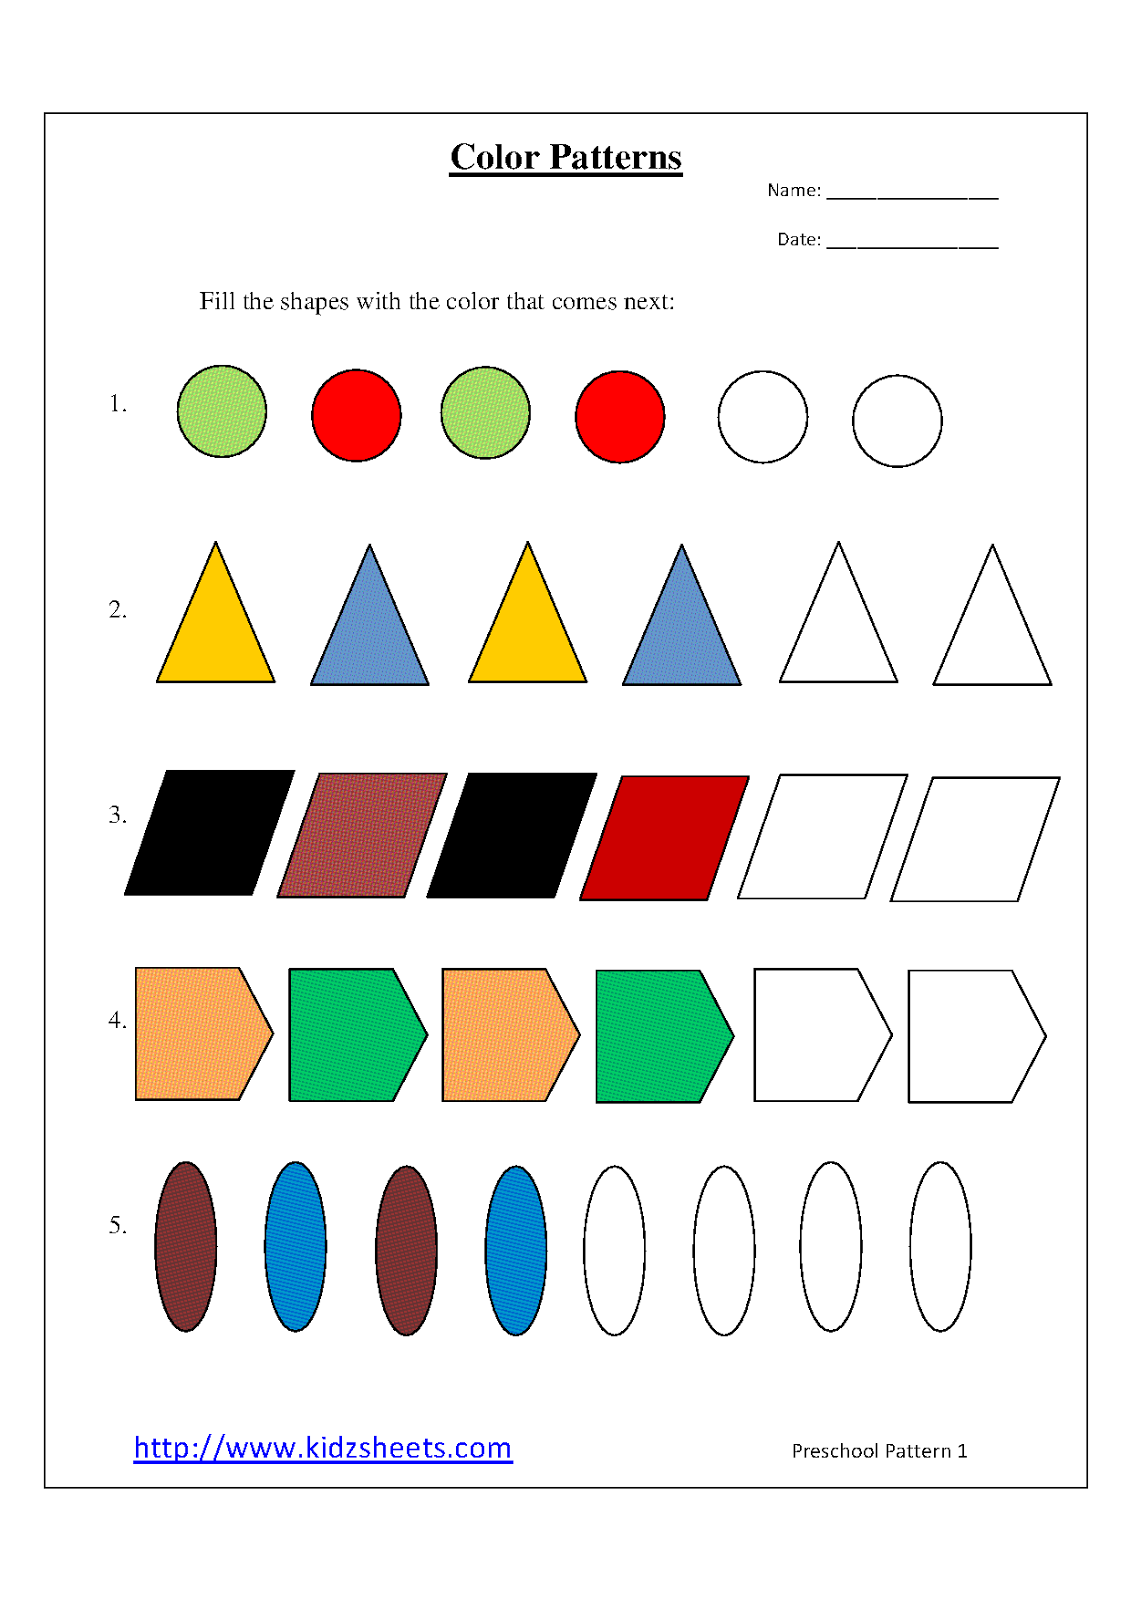 Kidz Worksheets Preschool Color Patterns Worksheet1